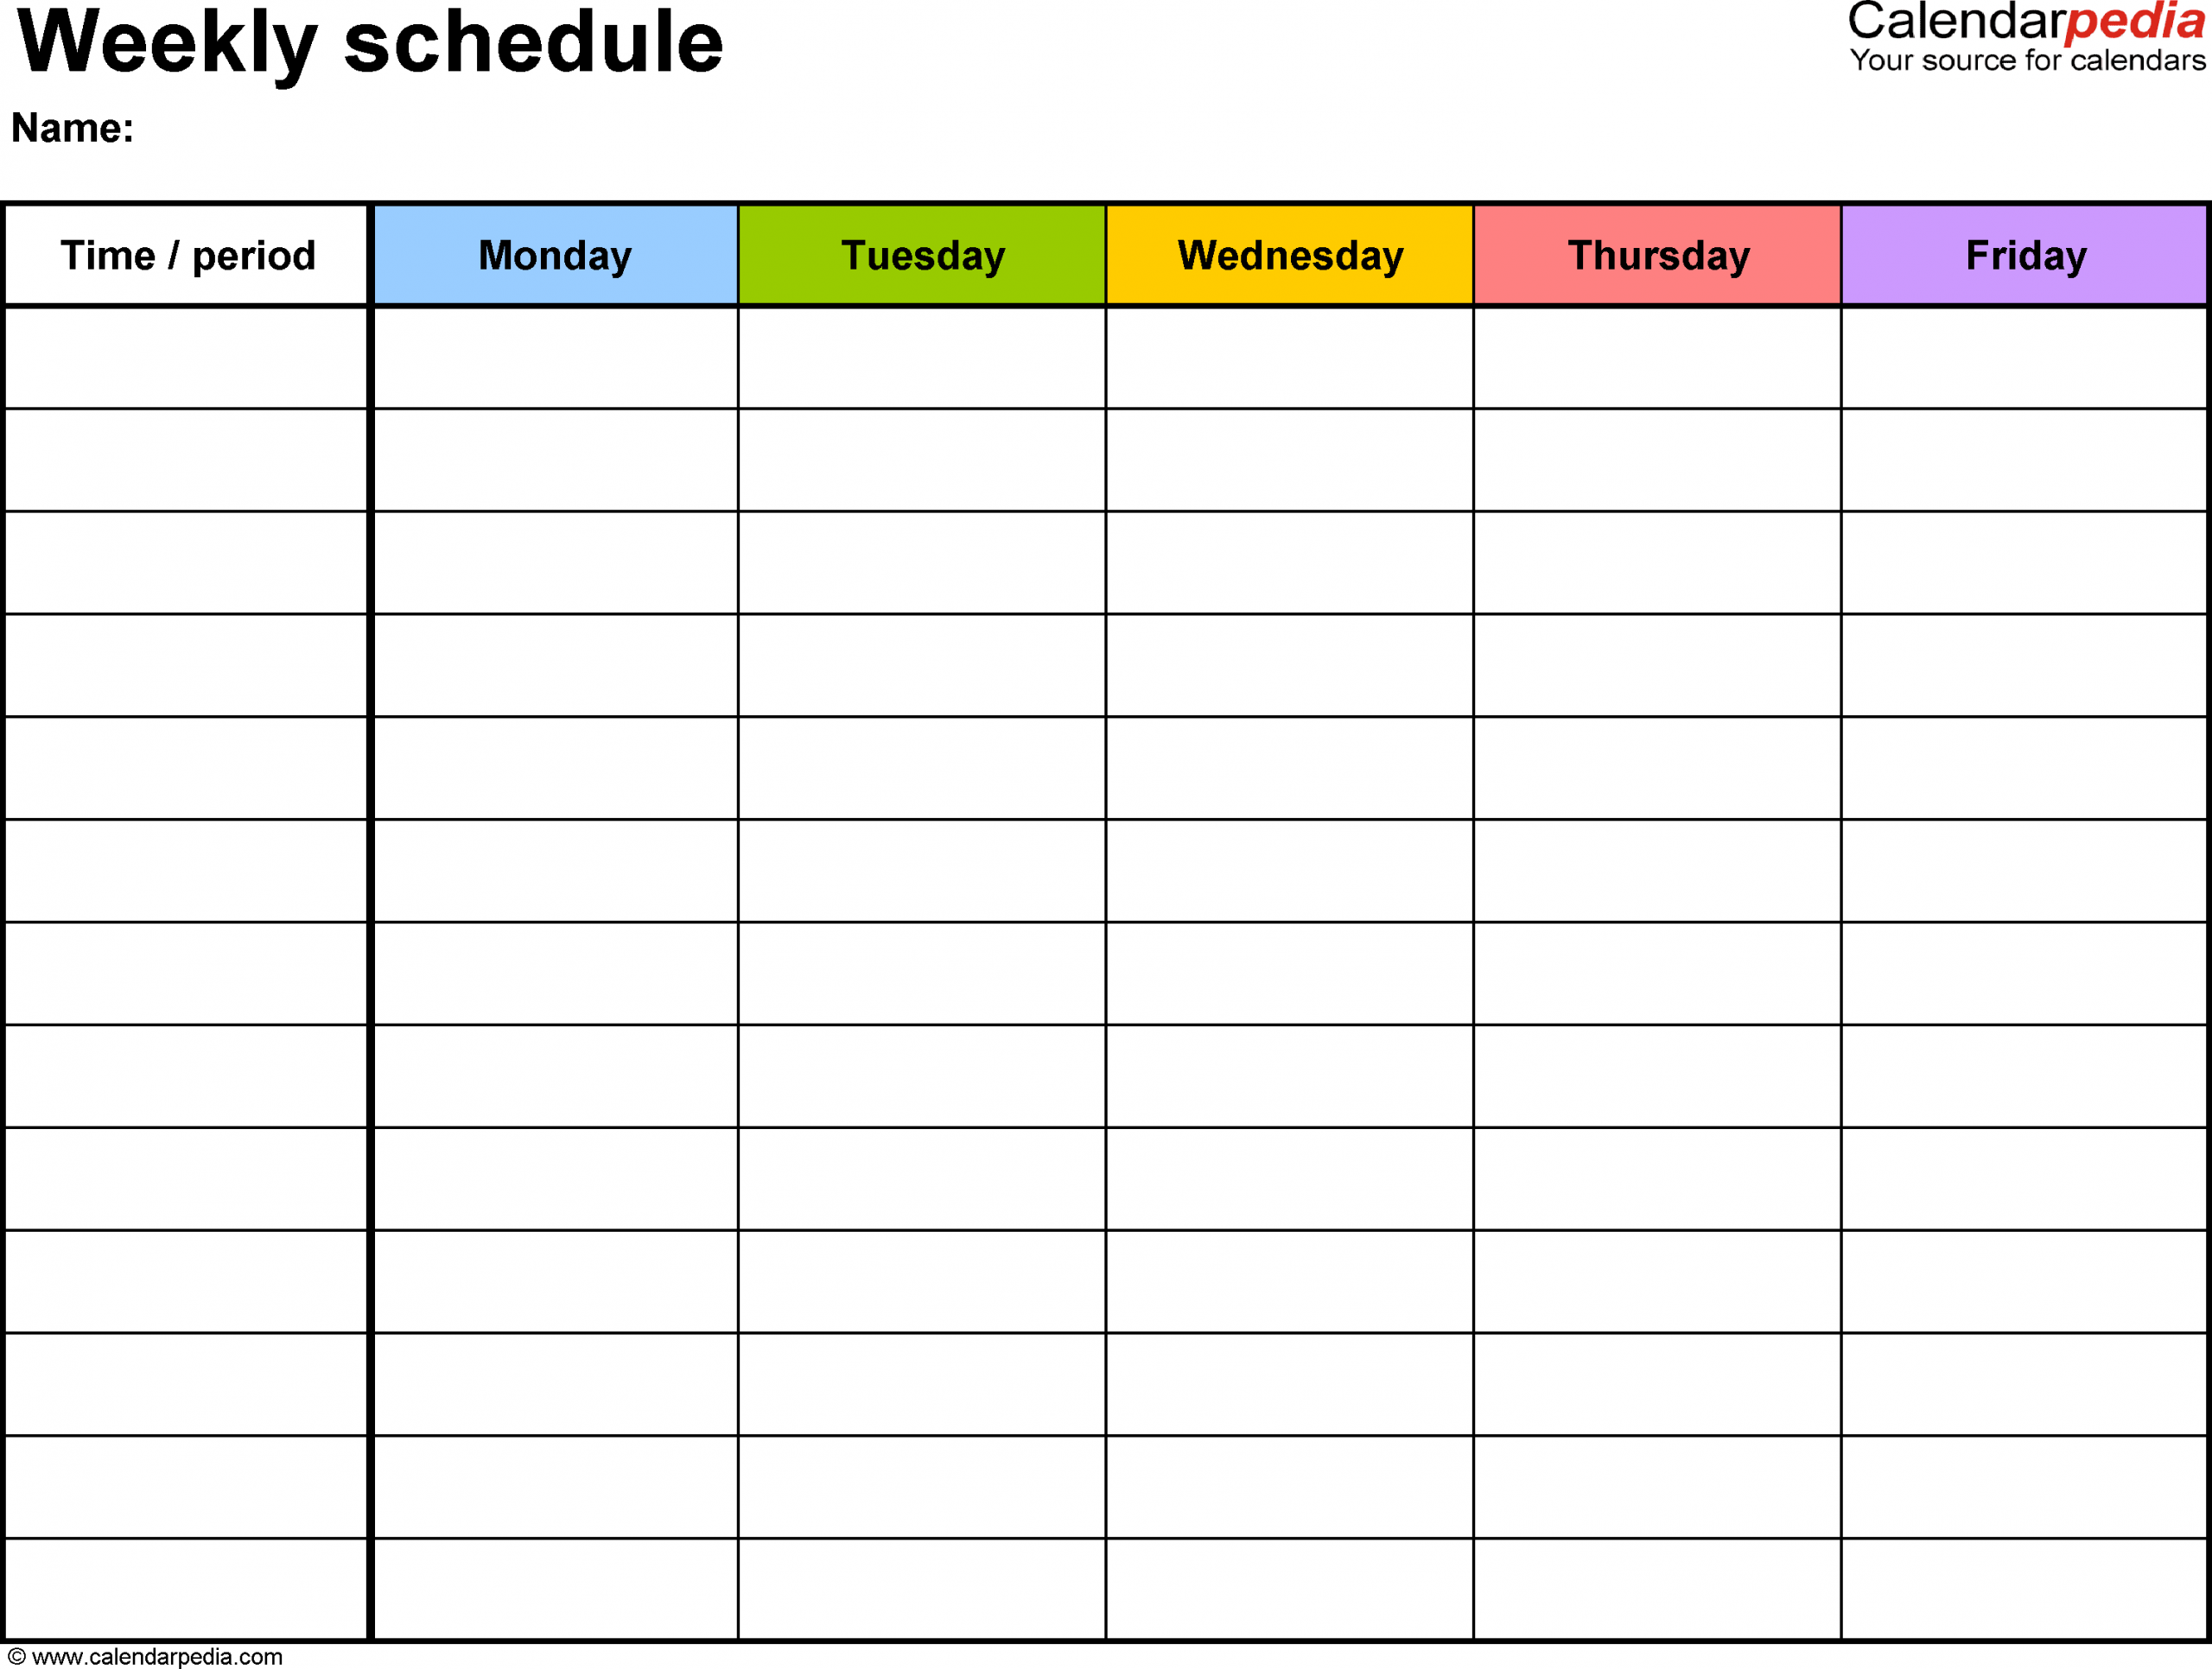 Weekly Schedule Template For Pdf Version 1: Landscape, 1 One Week Calendar To Type In